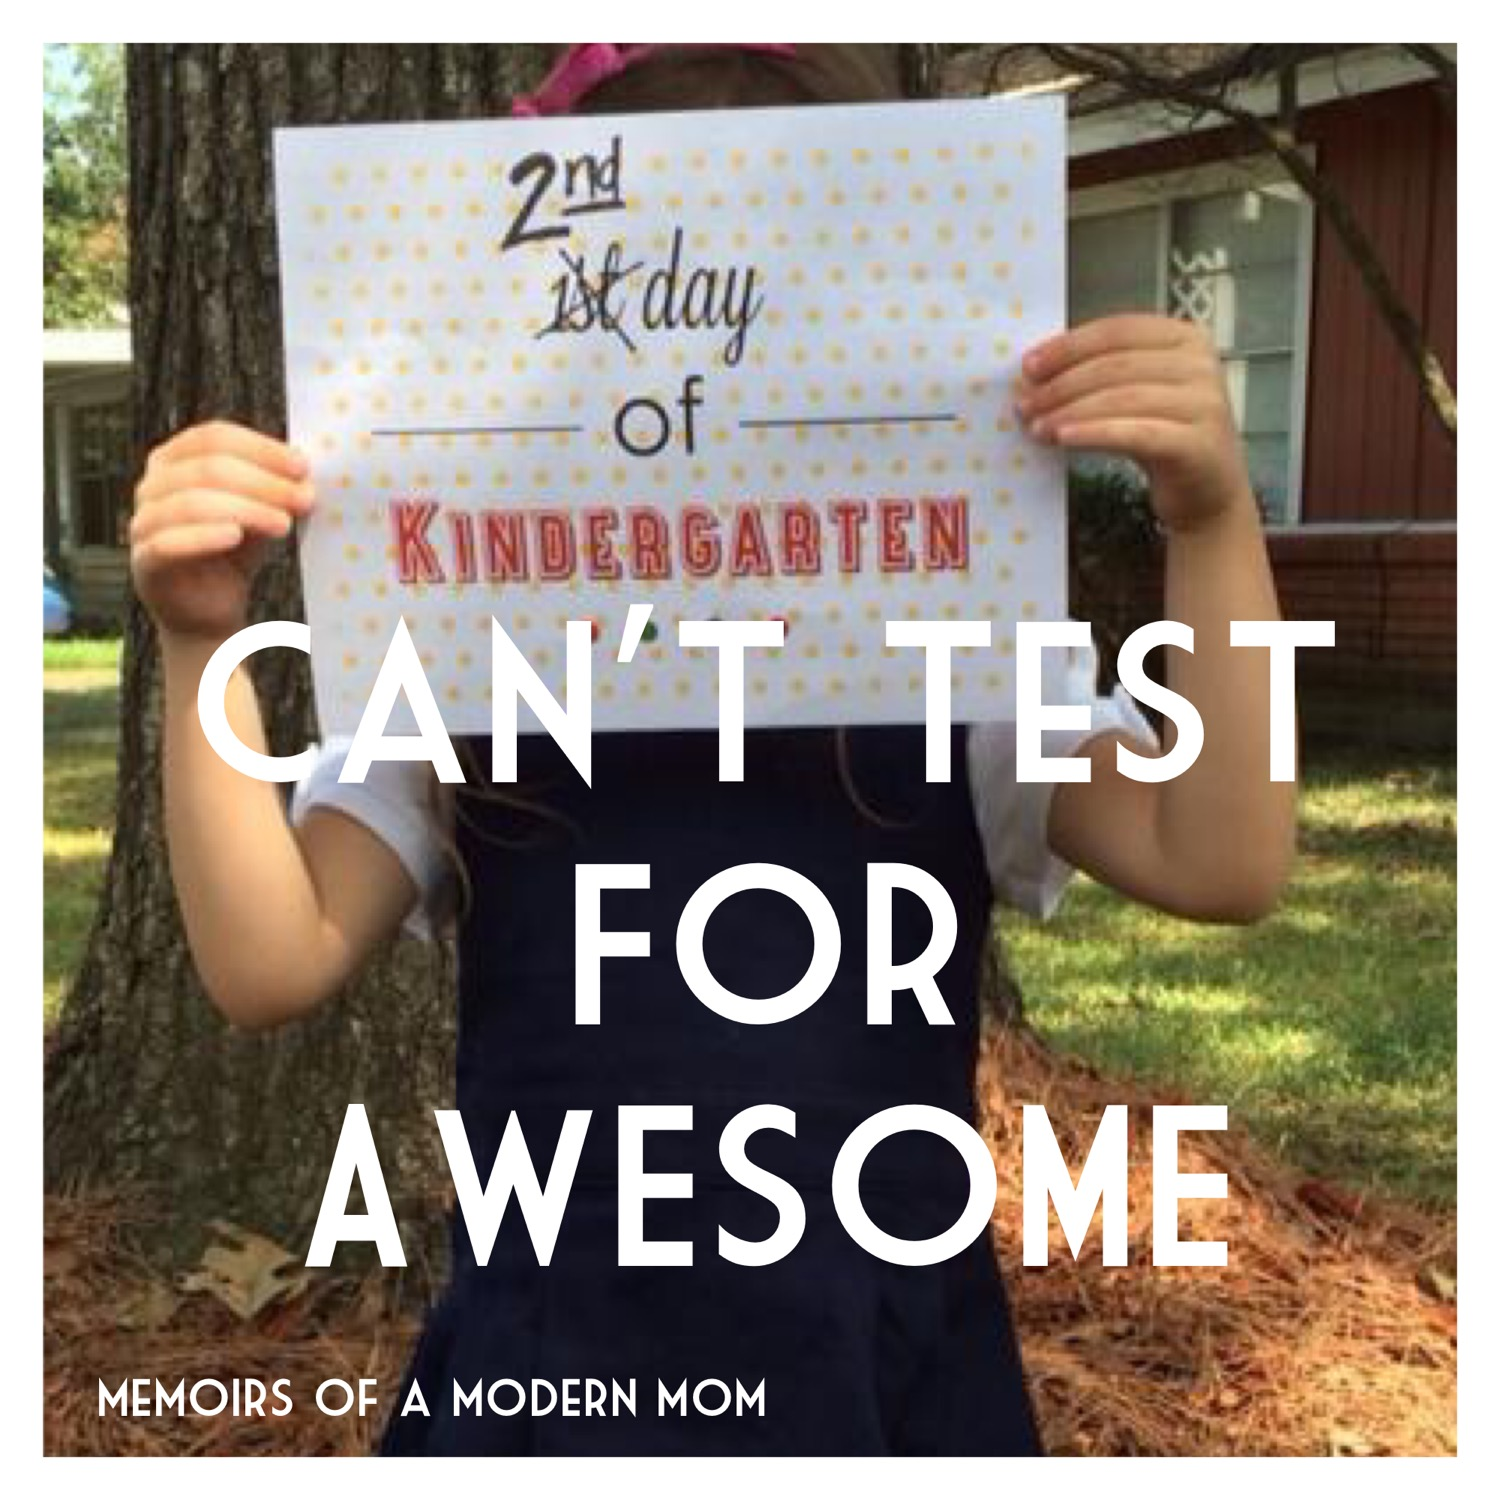 Can T Test For Awesome